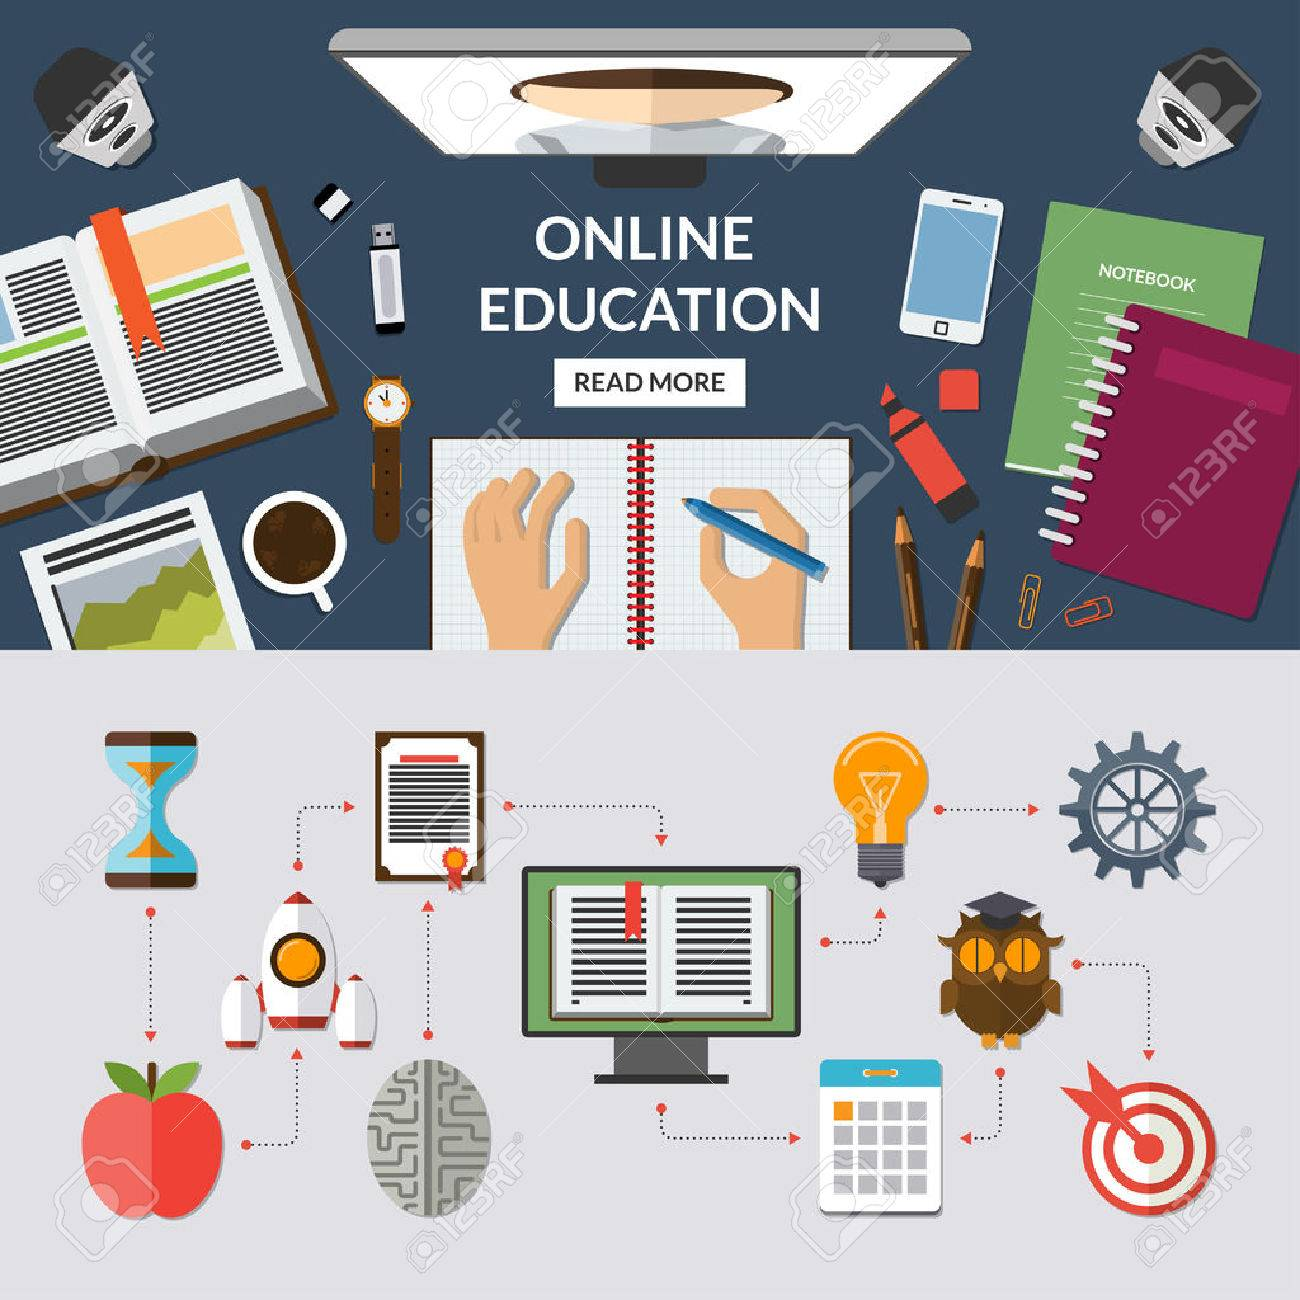 Online education, e learning, web courses flat concept background banner with education icons set. Top view on desktop. Study process. Vector illustration Stock Vector - 47651500